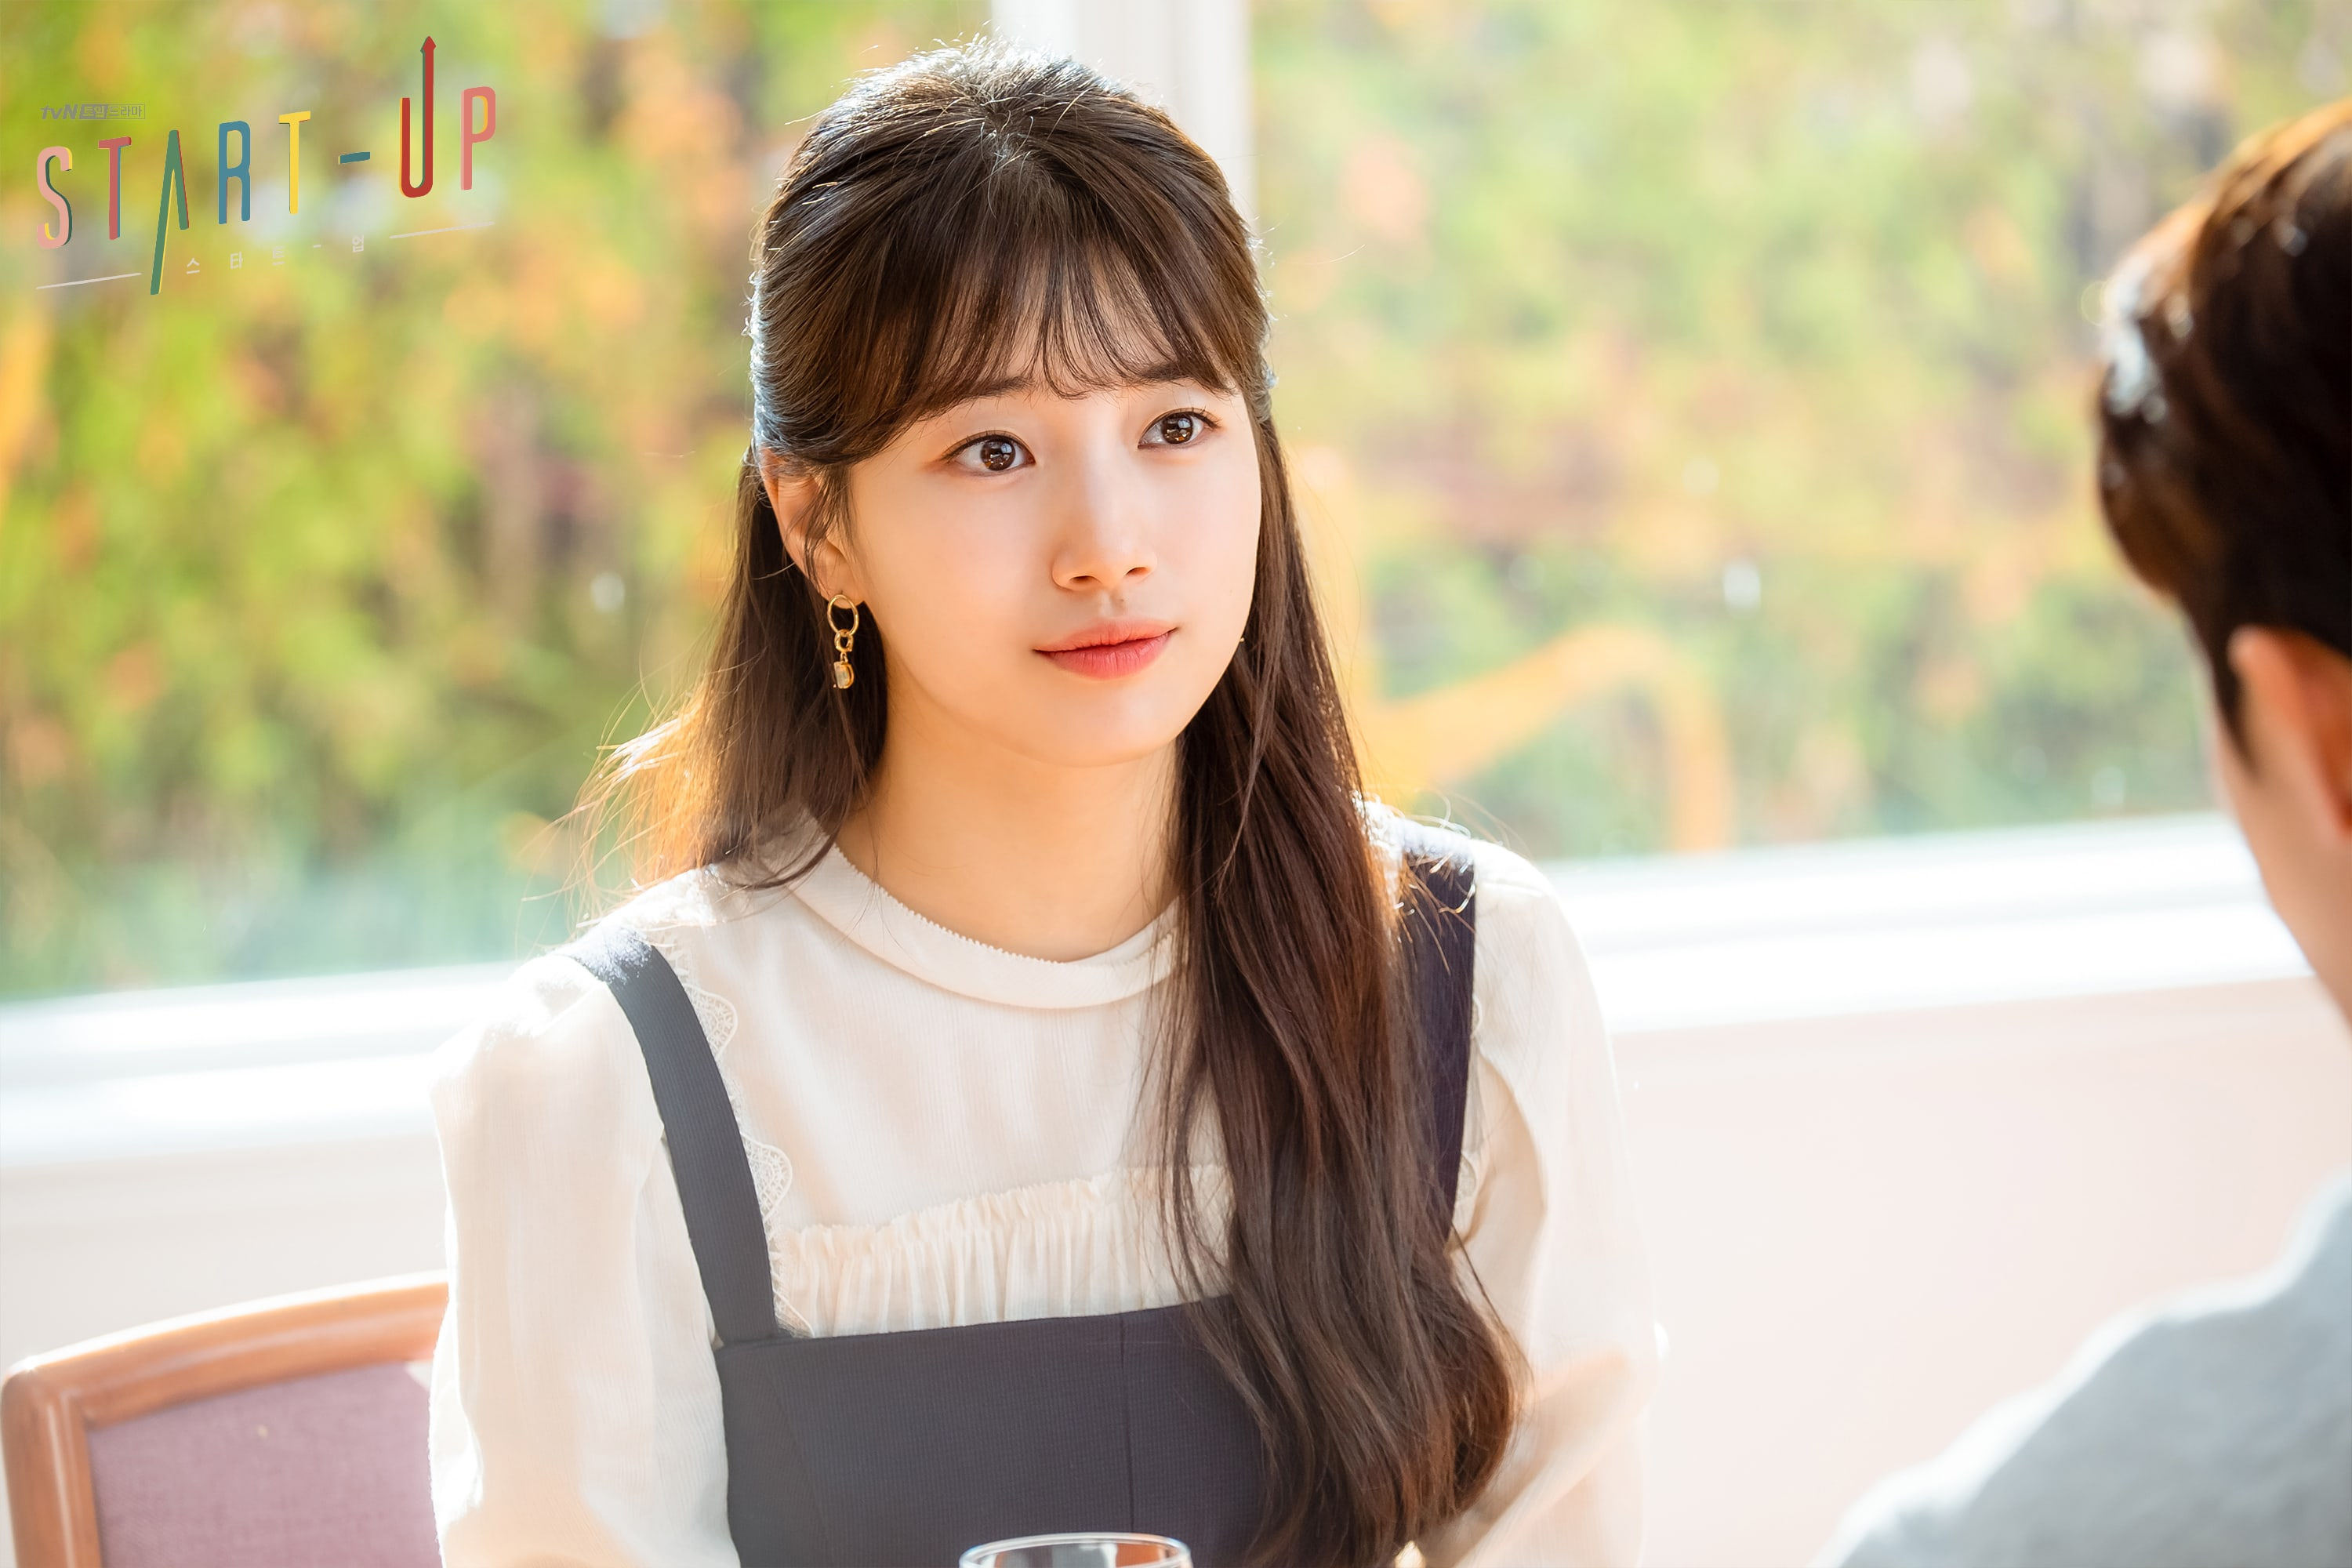 """""""Start-Up"""": Suzy and Nam Joo Hyuk go on a questionable date"""